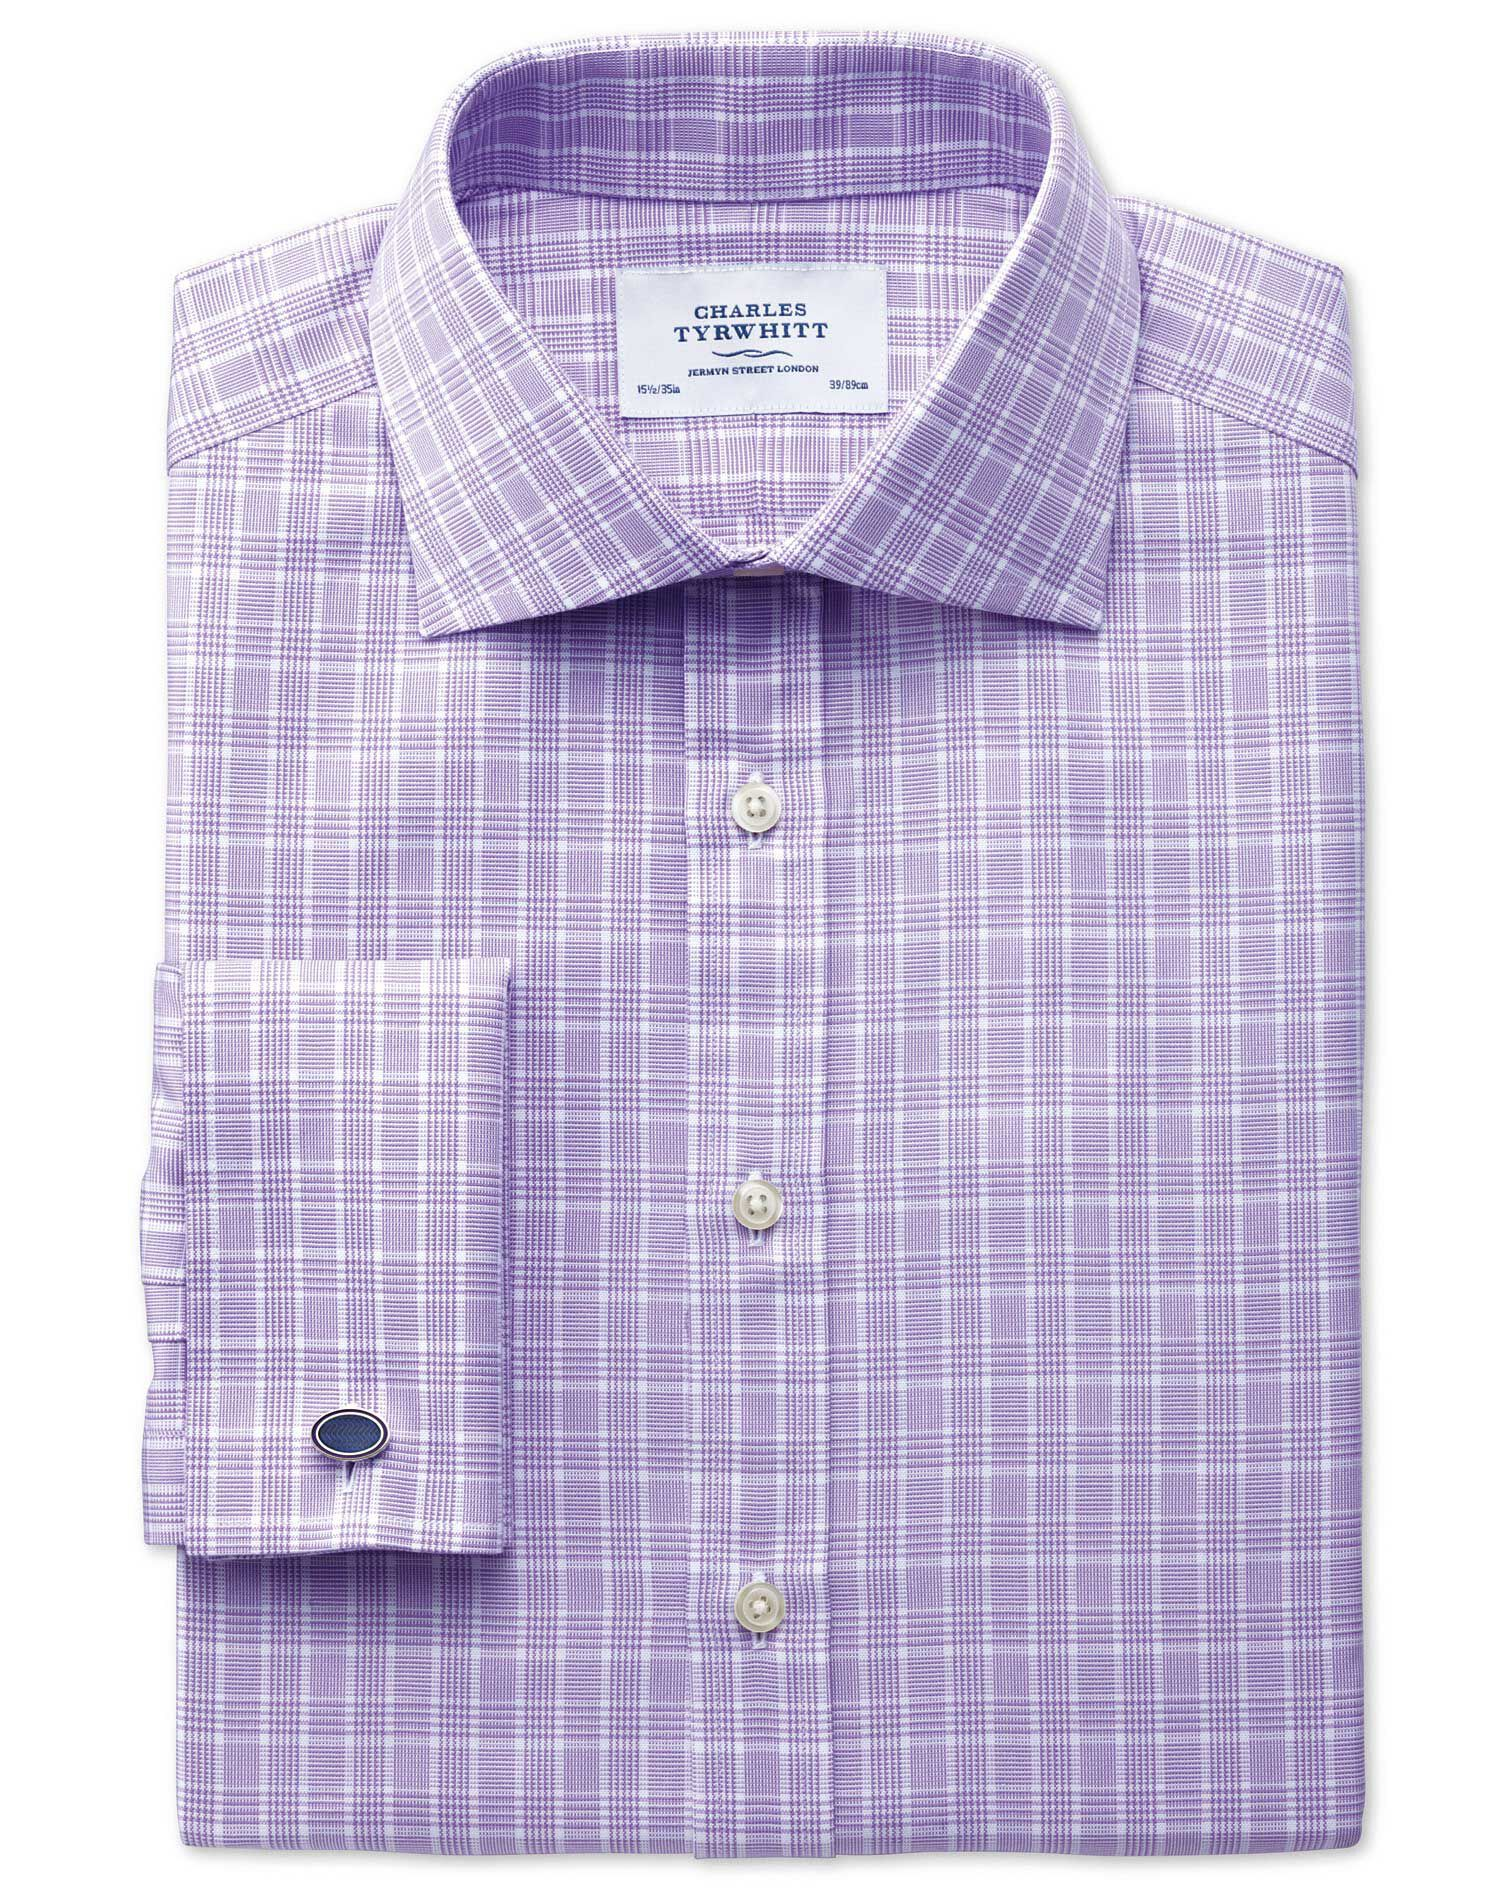 Slim Fit Prince Of Wales Lilac Cotton Formal Shirt Double Cuff Size 15.5/35 by Charles Tyrwhitt